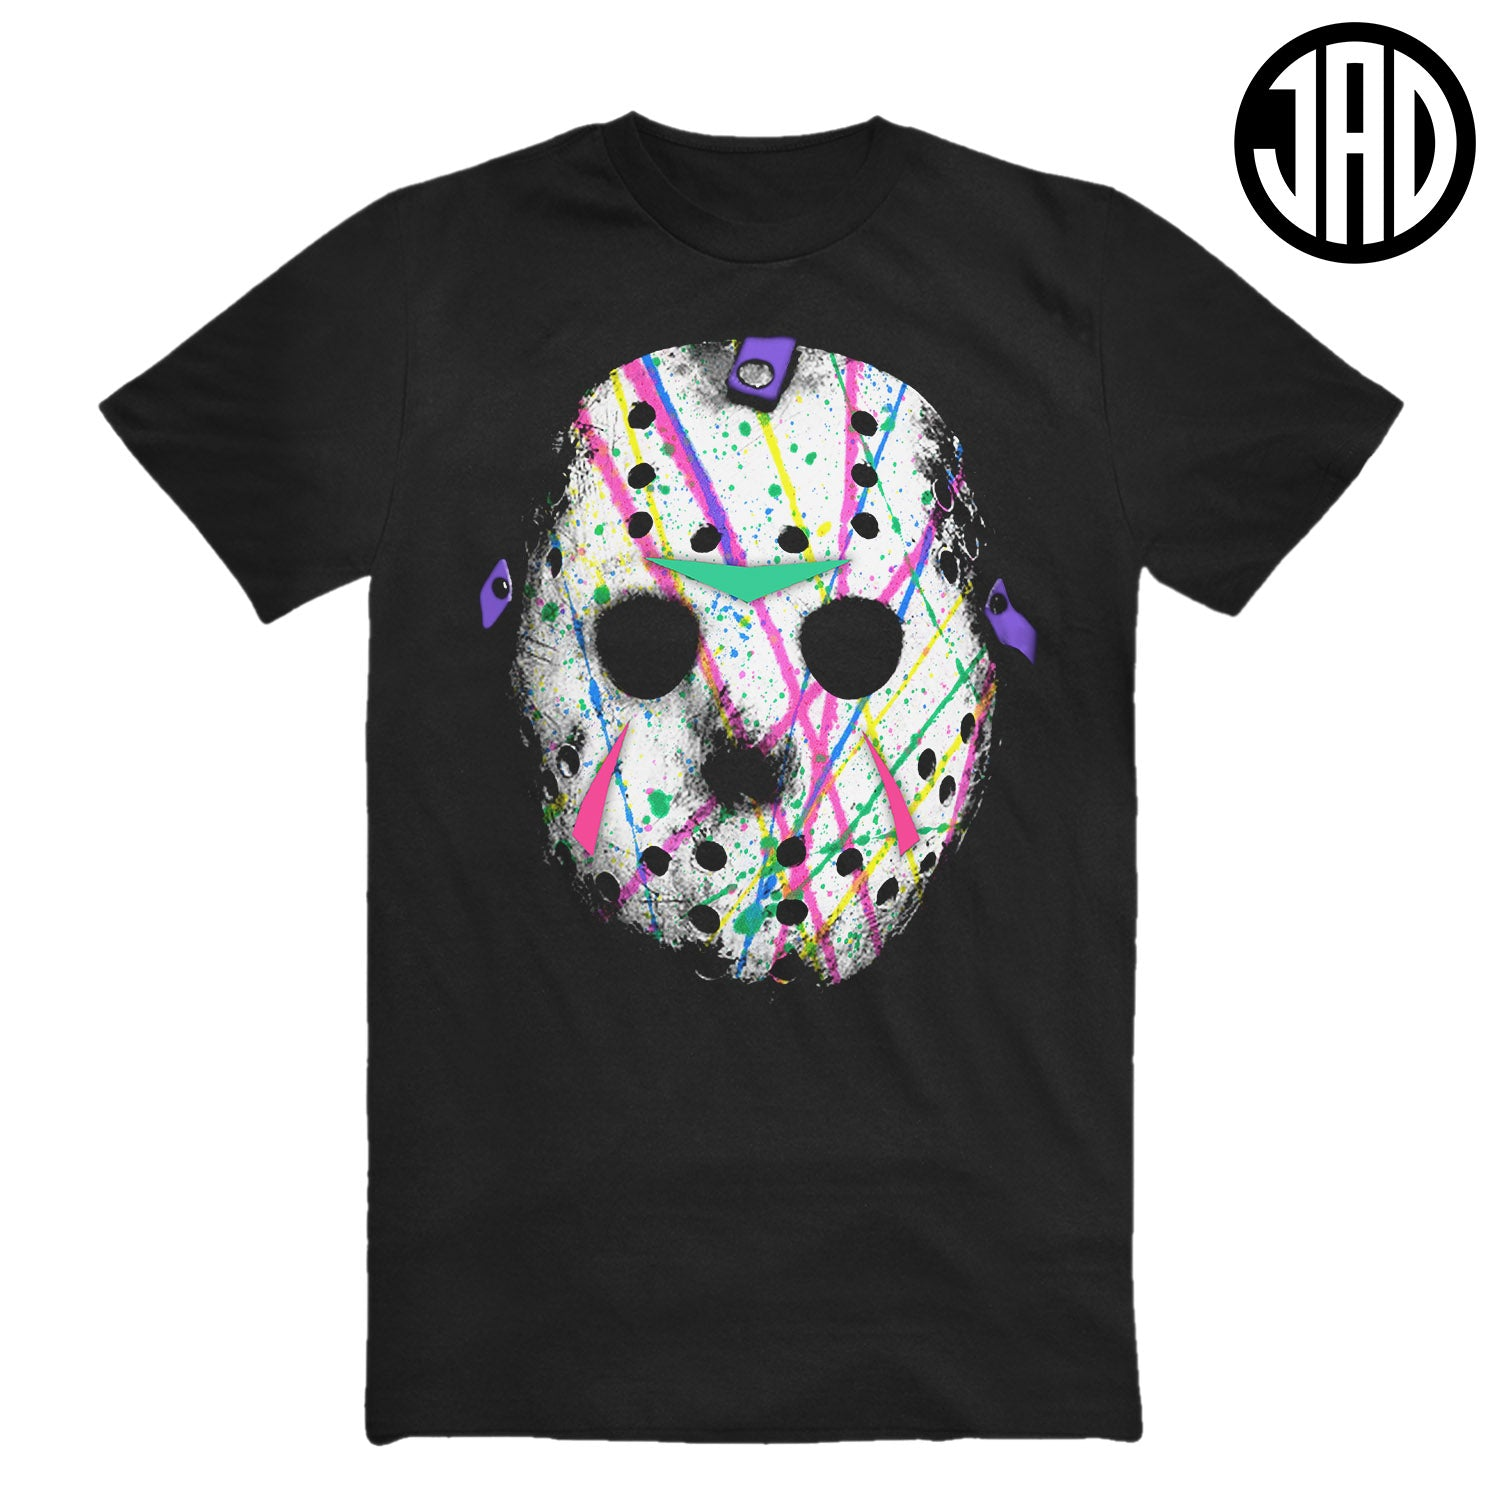 Splatter Wave Mask - Men's (Unisex) Tee